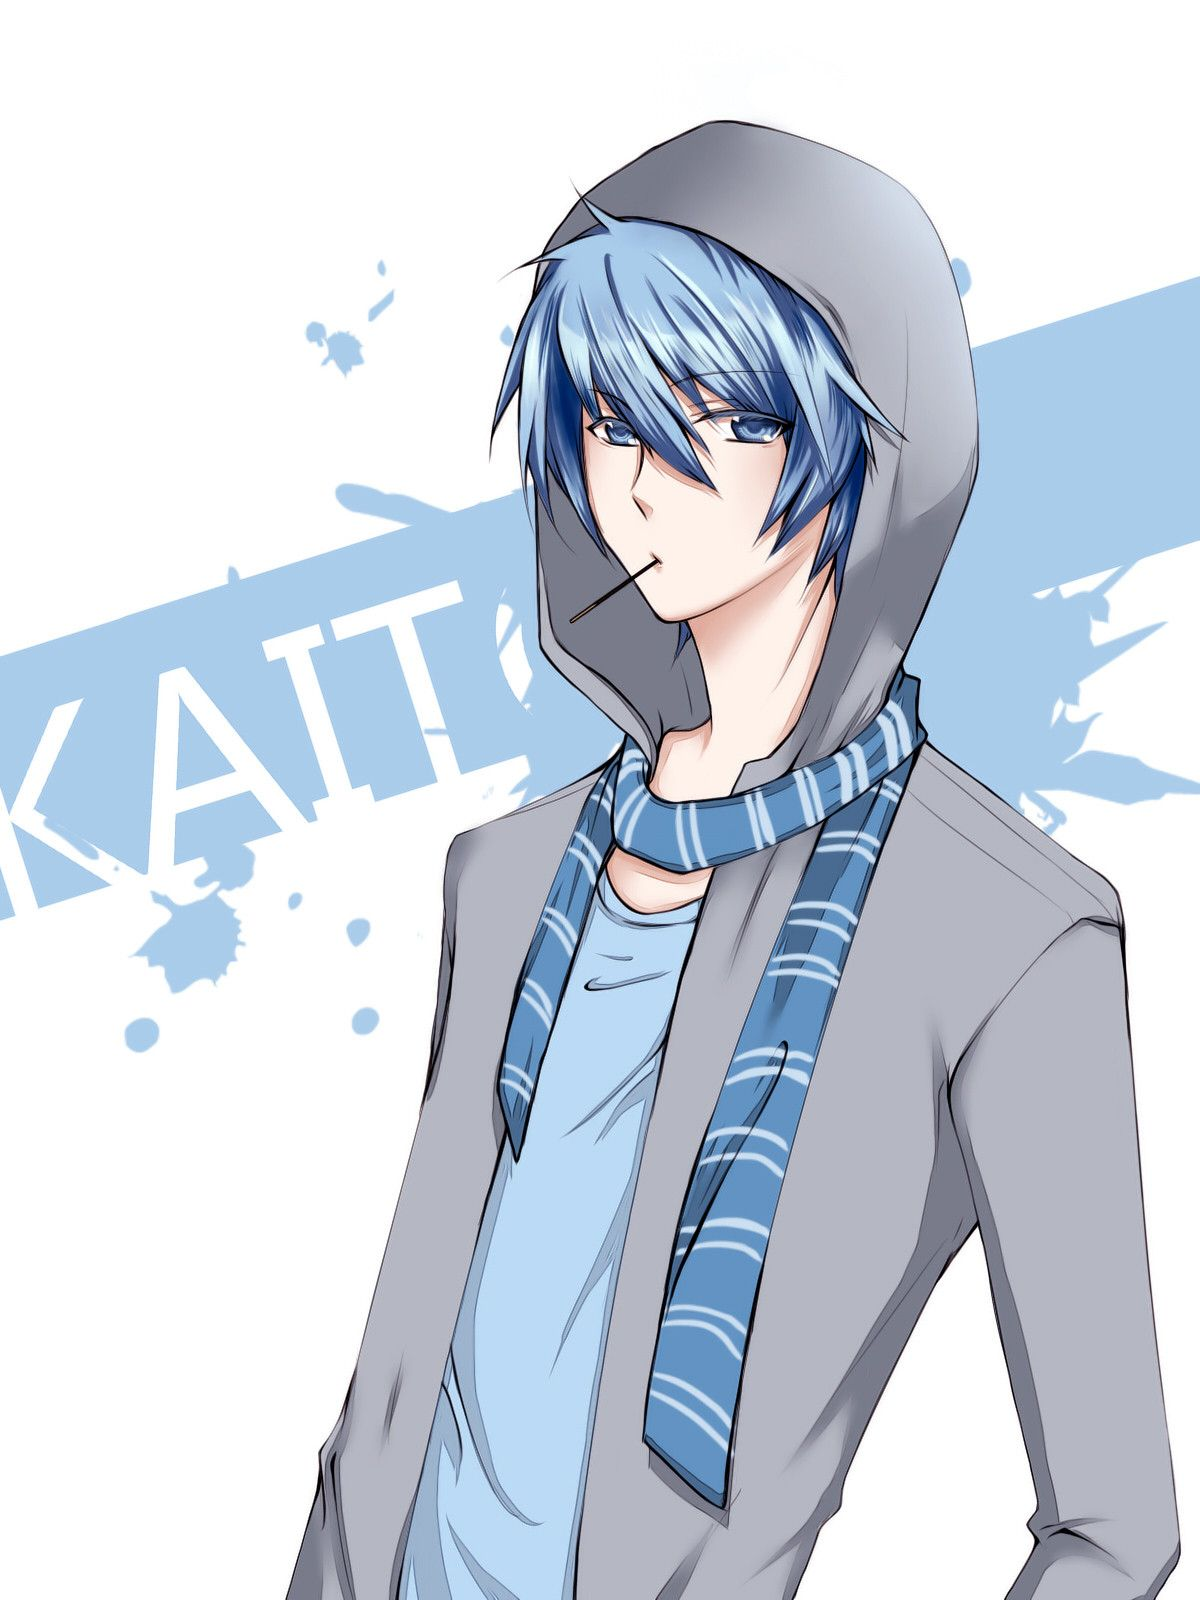 Anime Boy Standing Alone Widescreen 2 HD Wallpapers